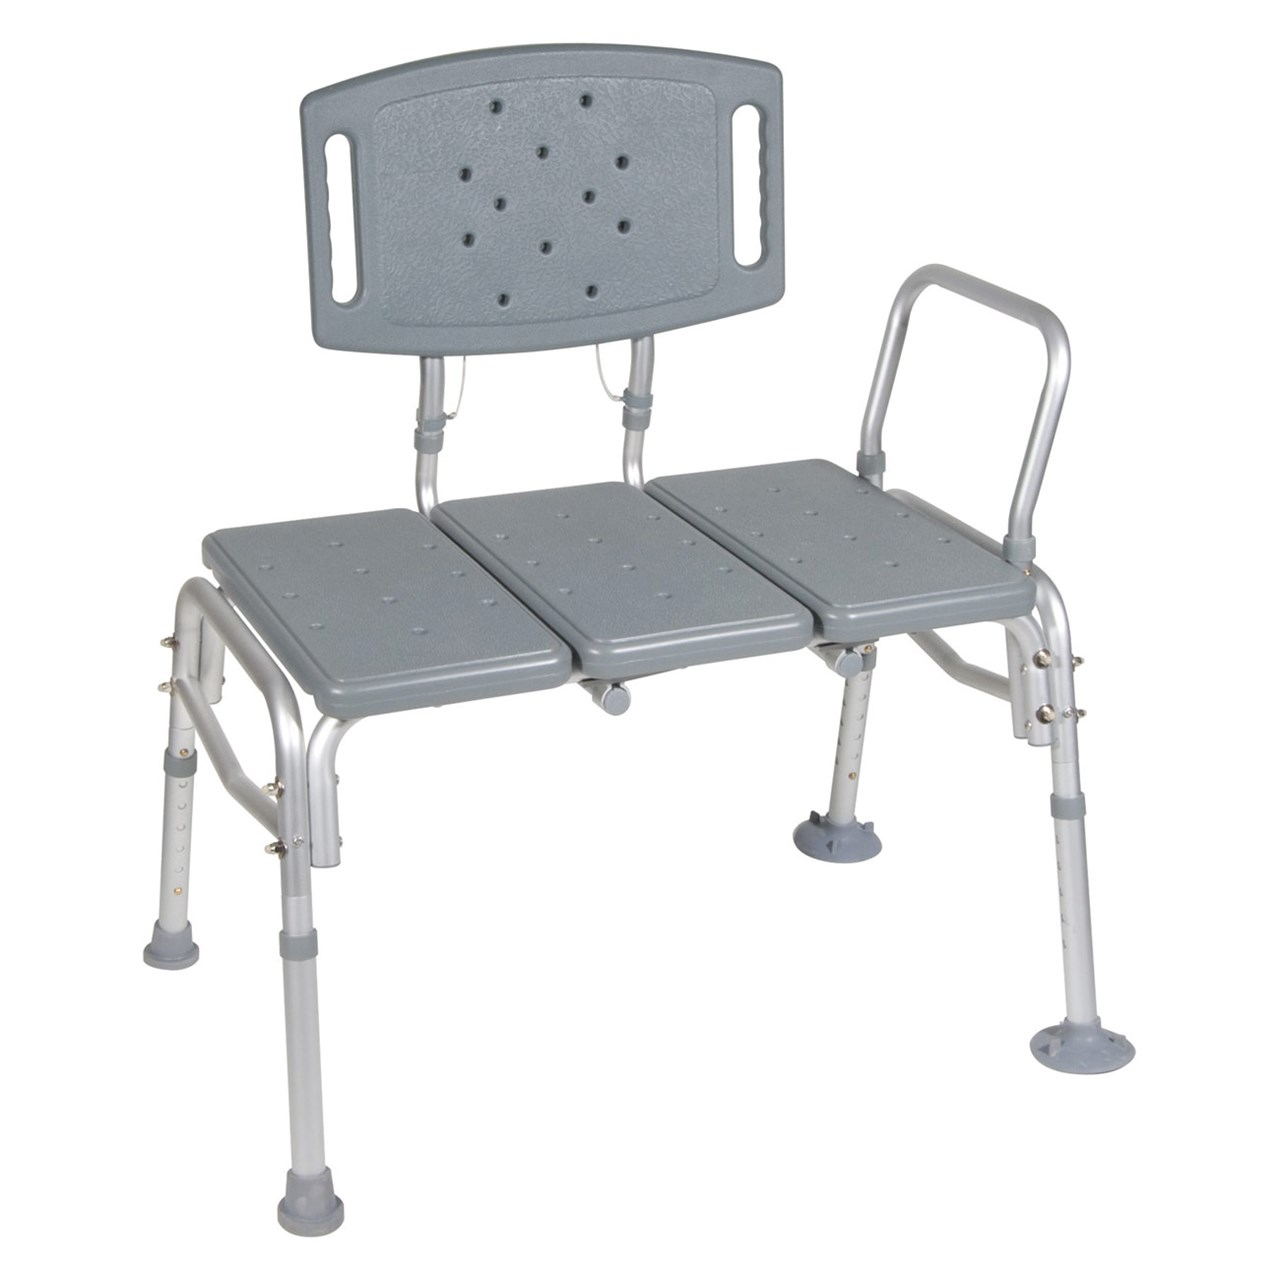 Transfer Chair For Shower Maxiaids Deluxe Heavy Duty Transfer Bench